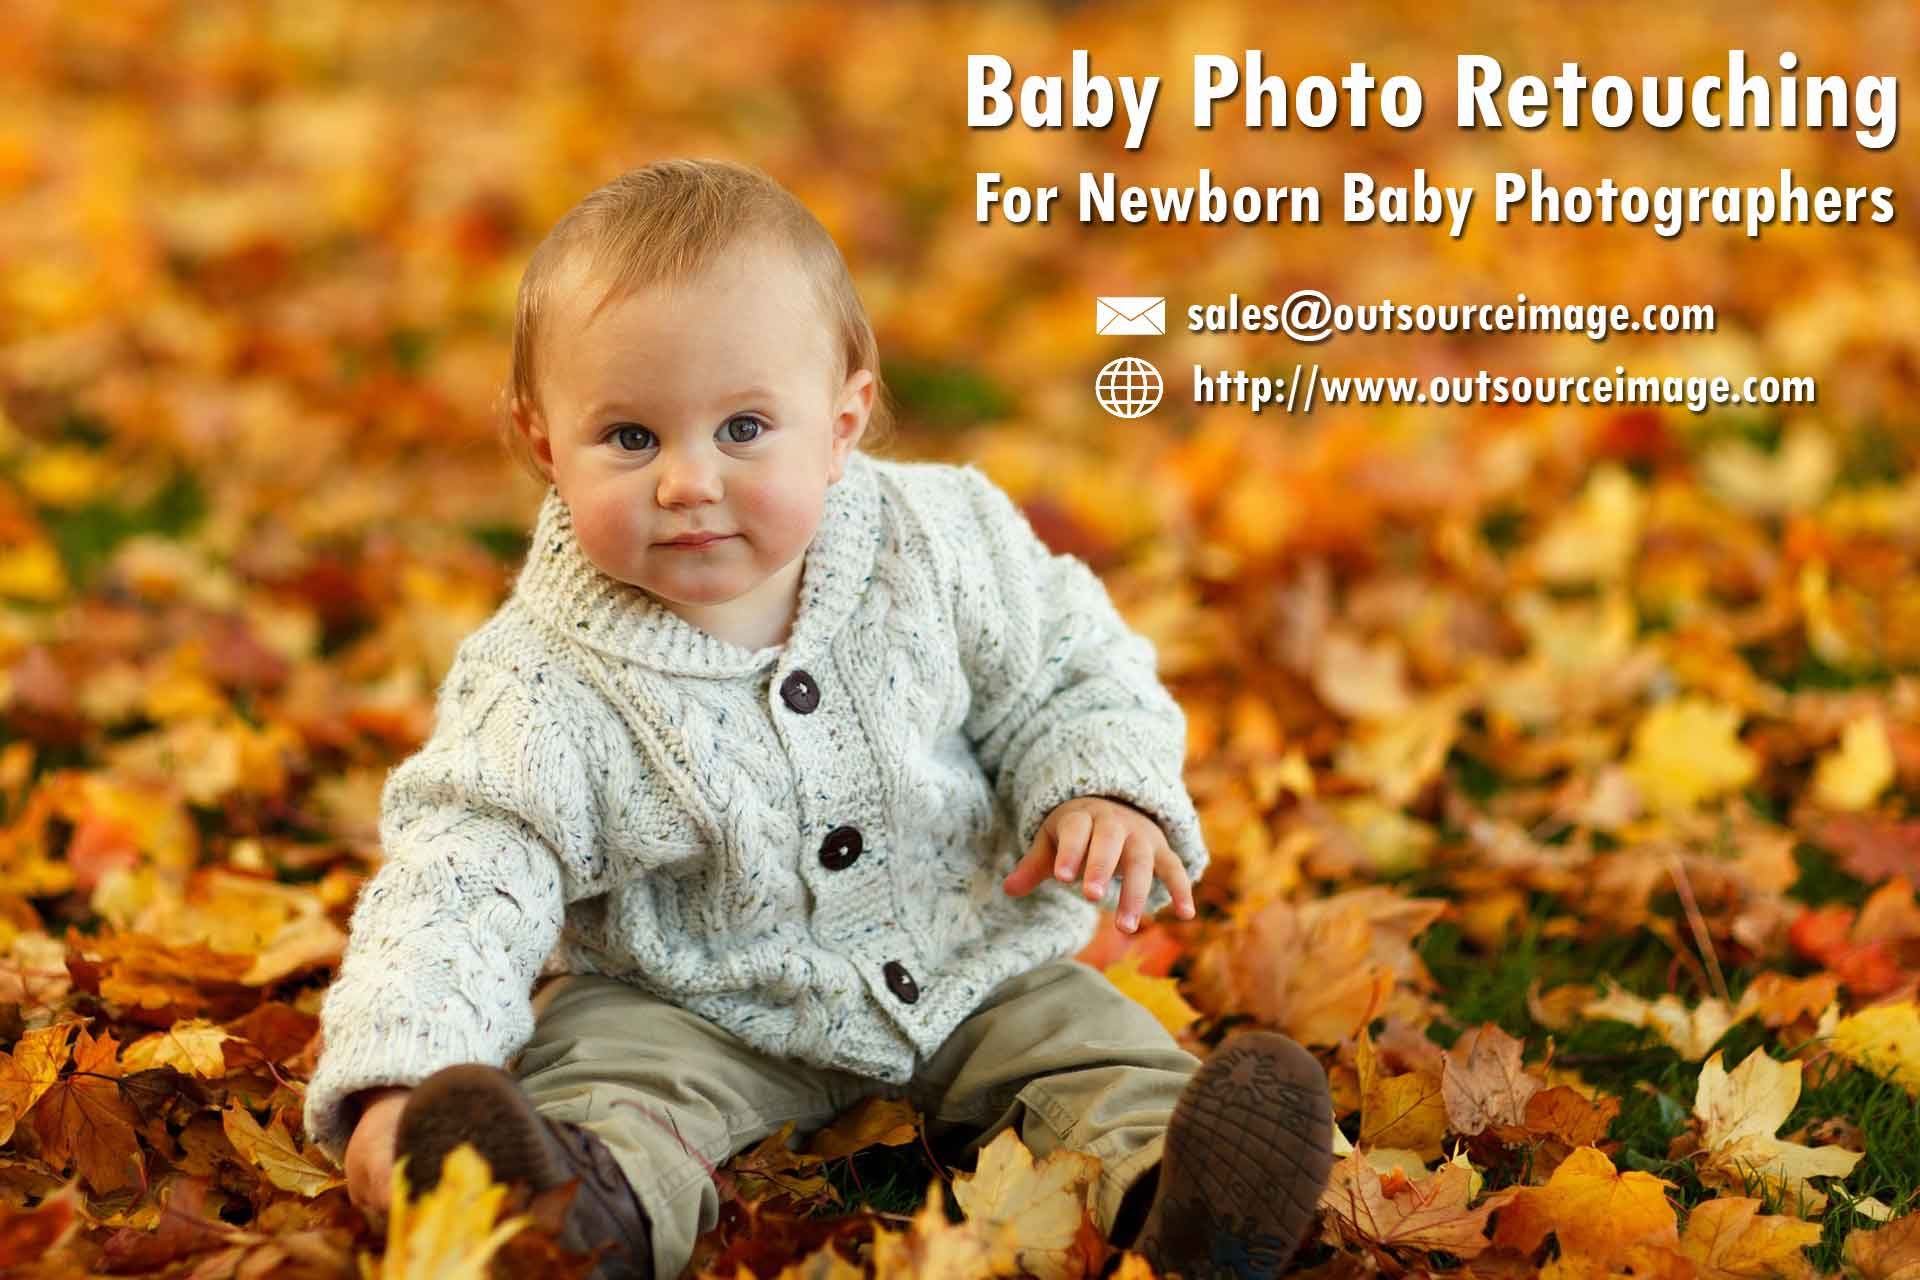 Newborn Baby Photo Editing and Child Photo Editing Service for Baby Photographers